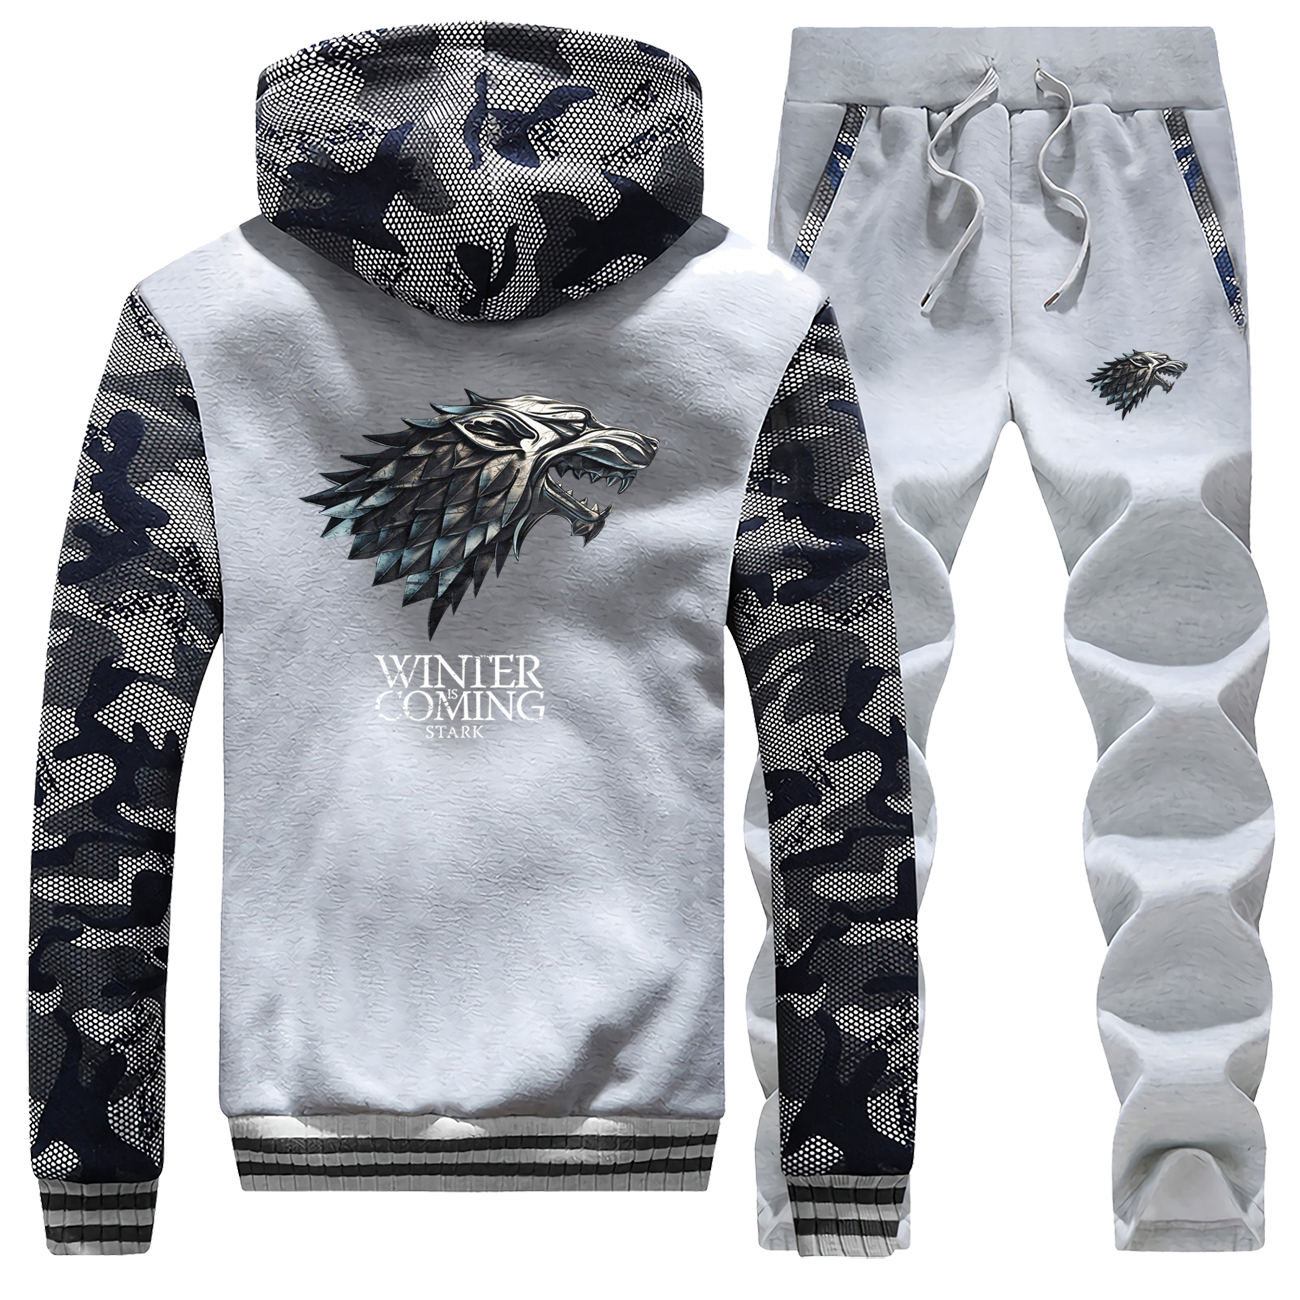 Winter House Of Stark Fleece Camouflage Mens Hoodies Game Of Thrones Coat Thick Suit Warm Jackets Sportswear+Pants 2 Piece Set